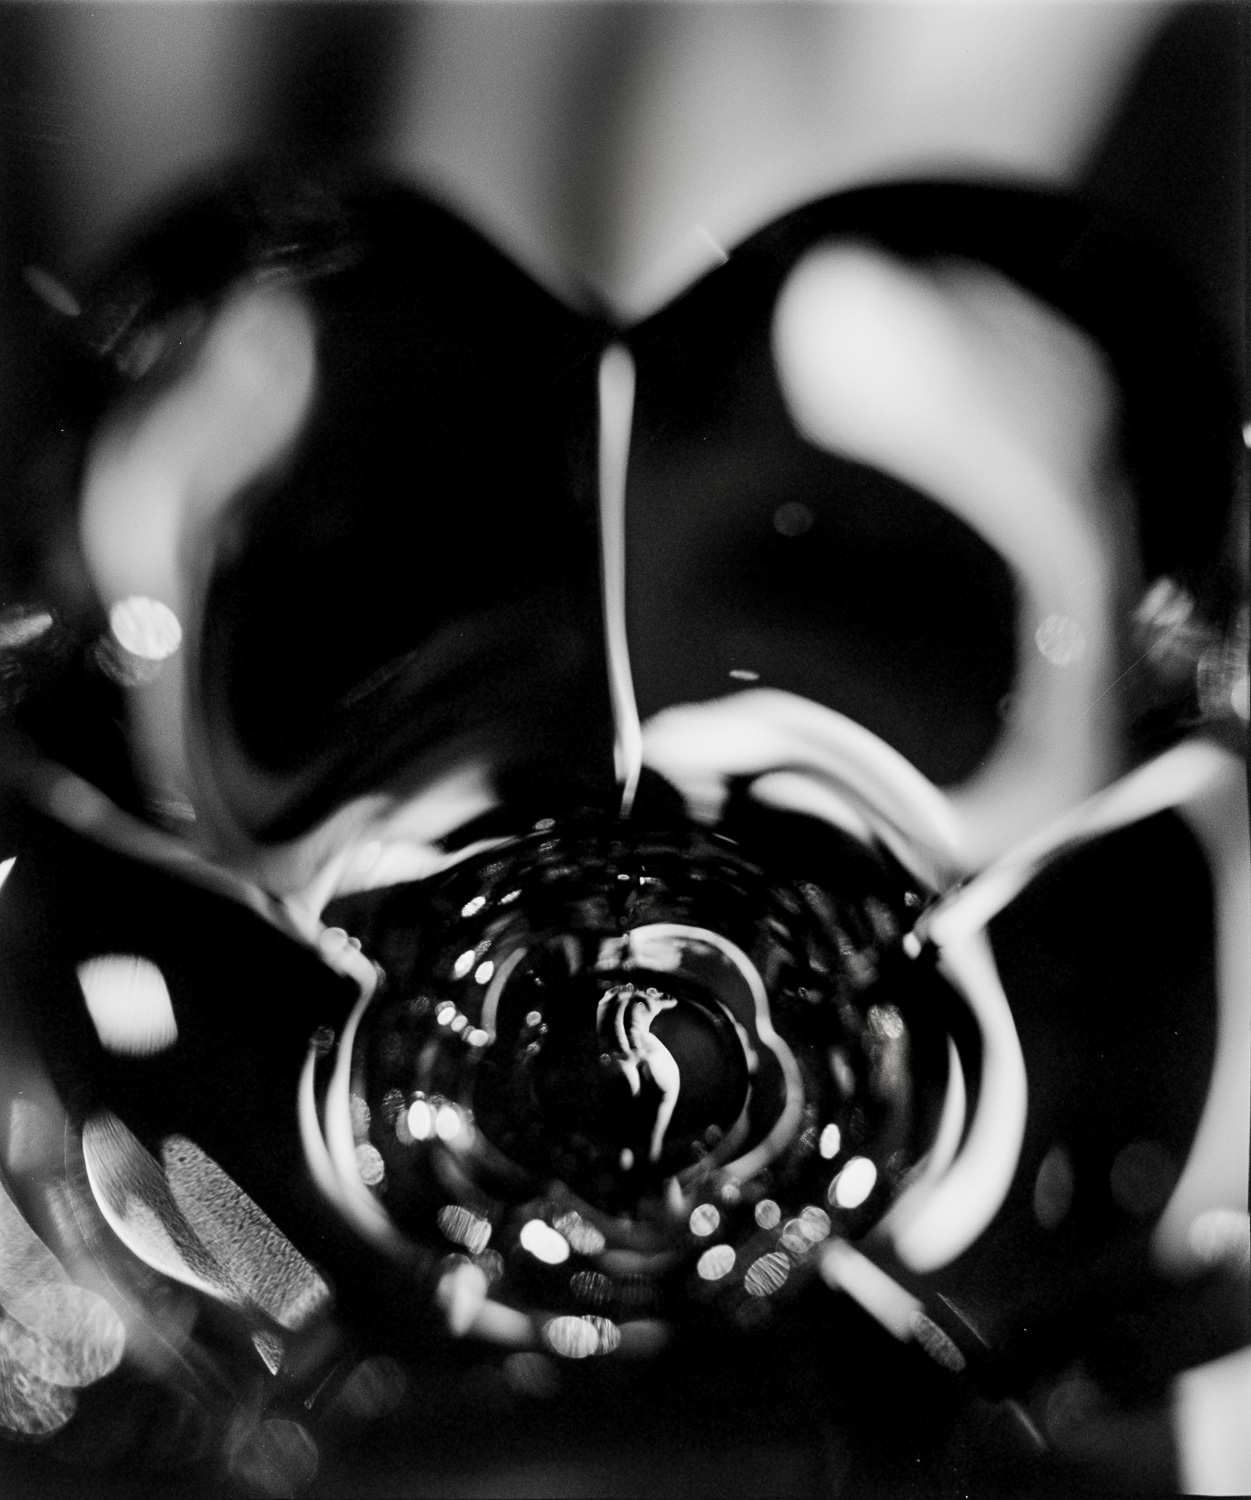 Black and white nudes, fine art photography, nude art prints, bw fine art, refraction, reflection, in glass, female, flower petal glass, art nudes